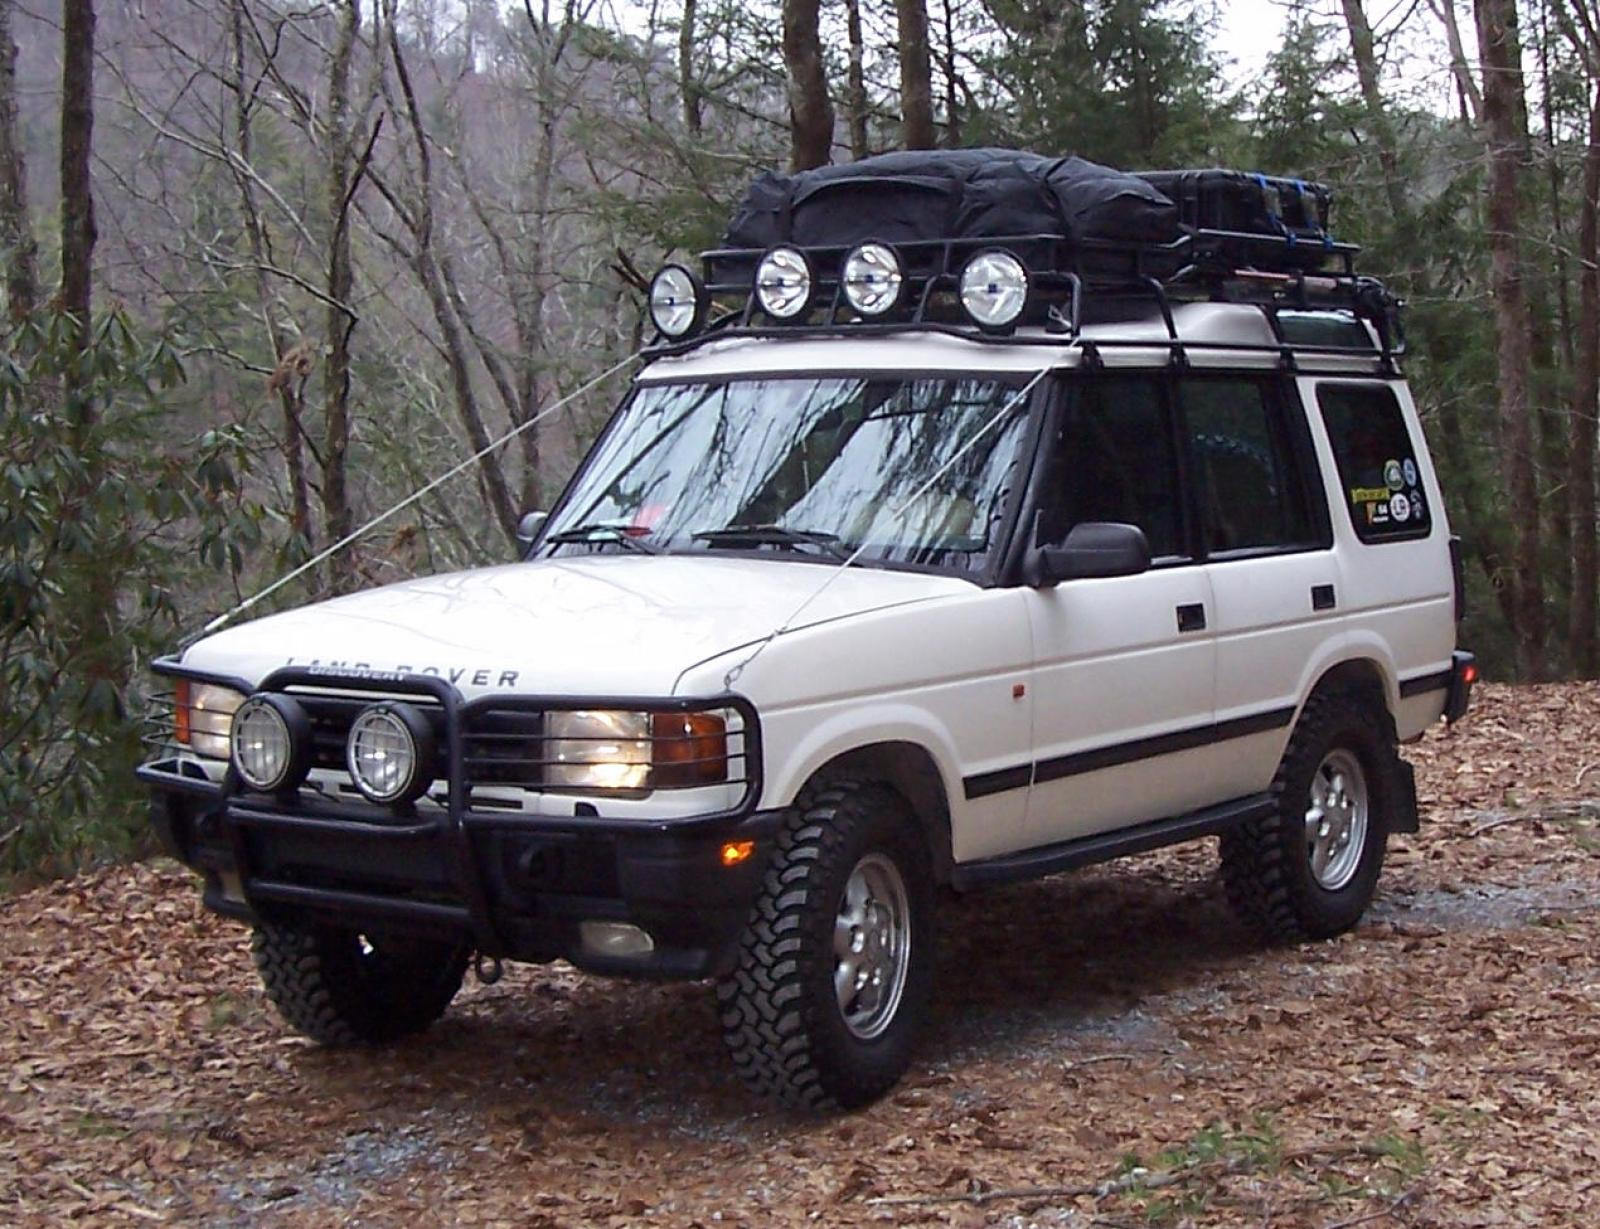 1996 Land Rover Discovery Information and photos ZombieDrive